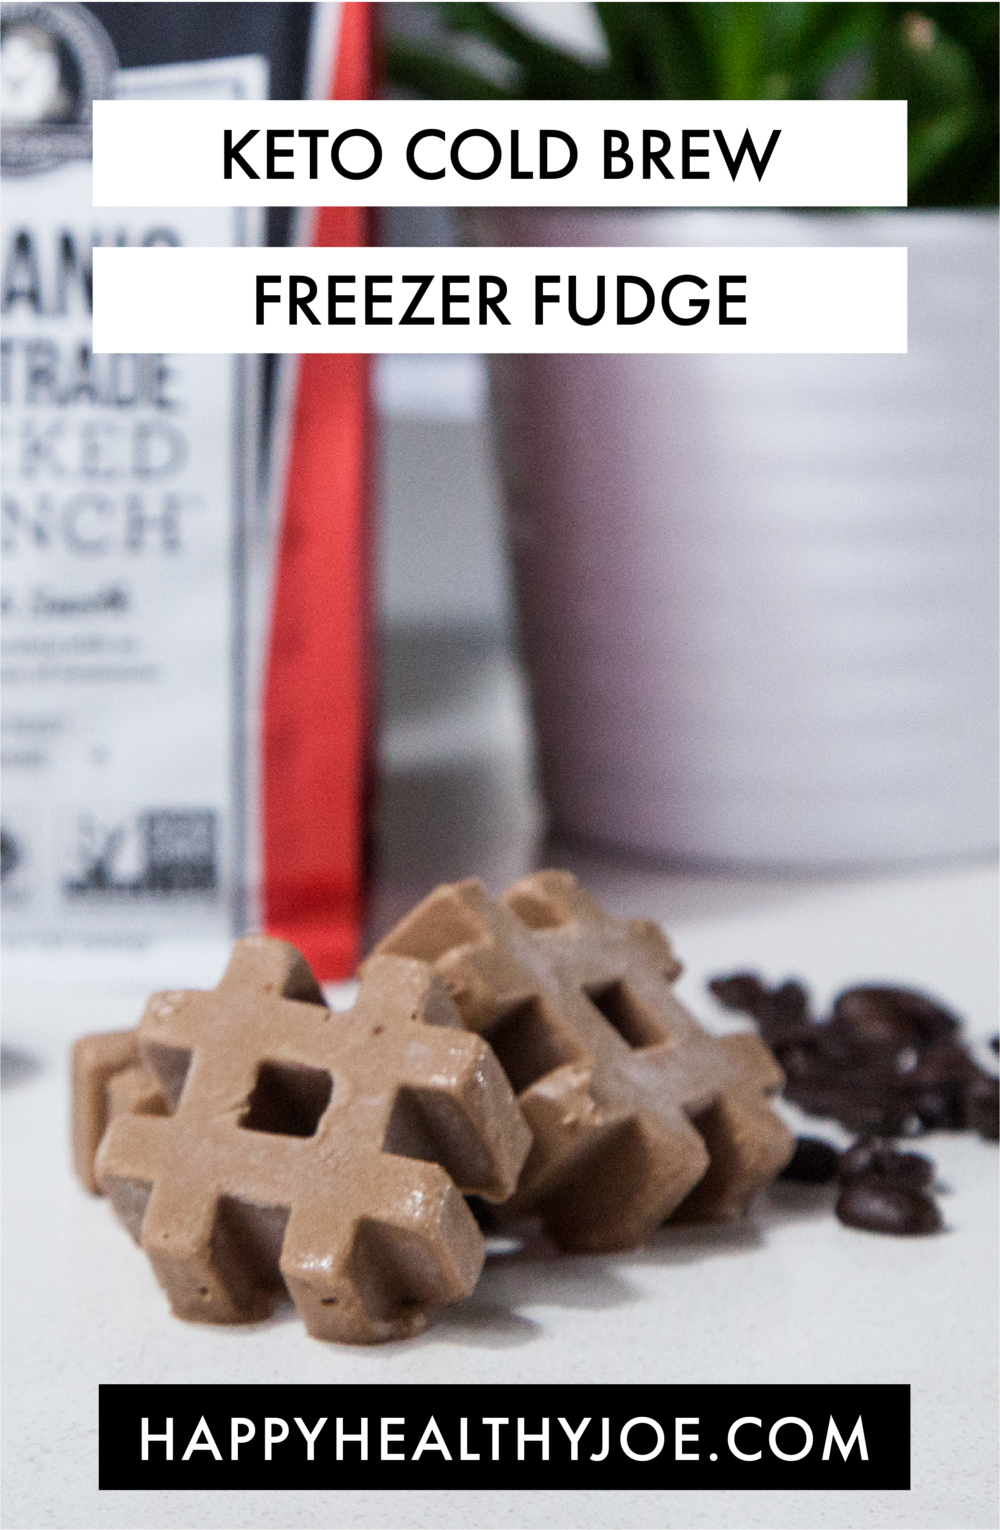 Keto Cold Brew Freezer Fudge Recipe